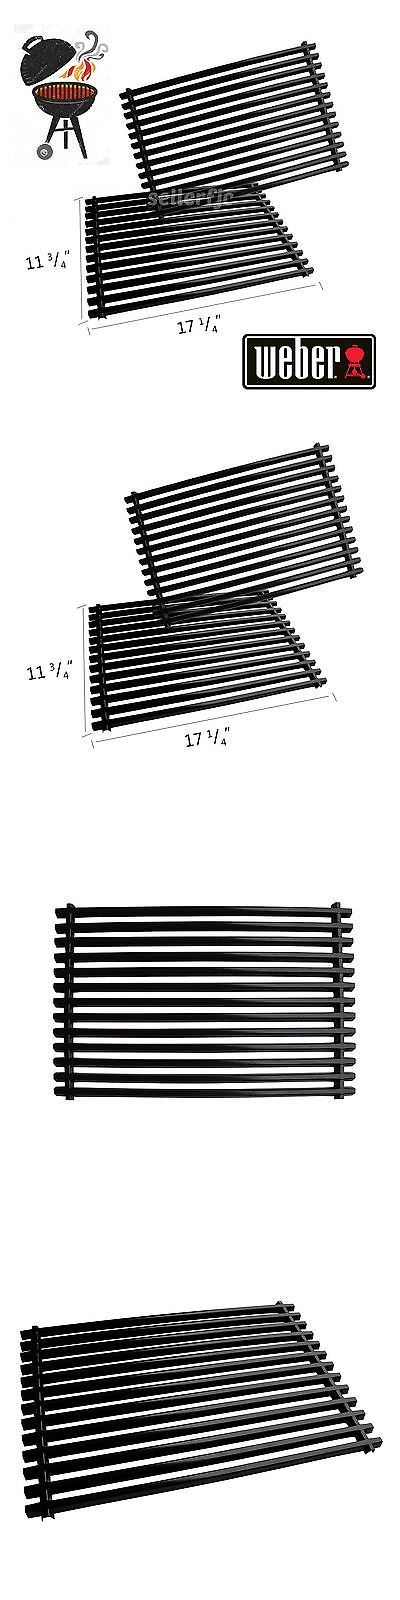 BBQ and Grill Replacement Parts 177018: For Weber 7525 Set Of 2 Cooking Grates Spirit Genesis Heavy Duty Bbq Porcelain -> BUY IT NOW ONLY: $54.6 on eBay!